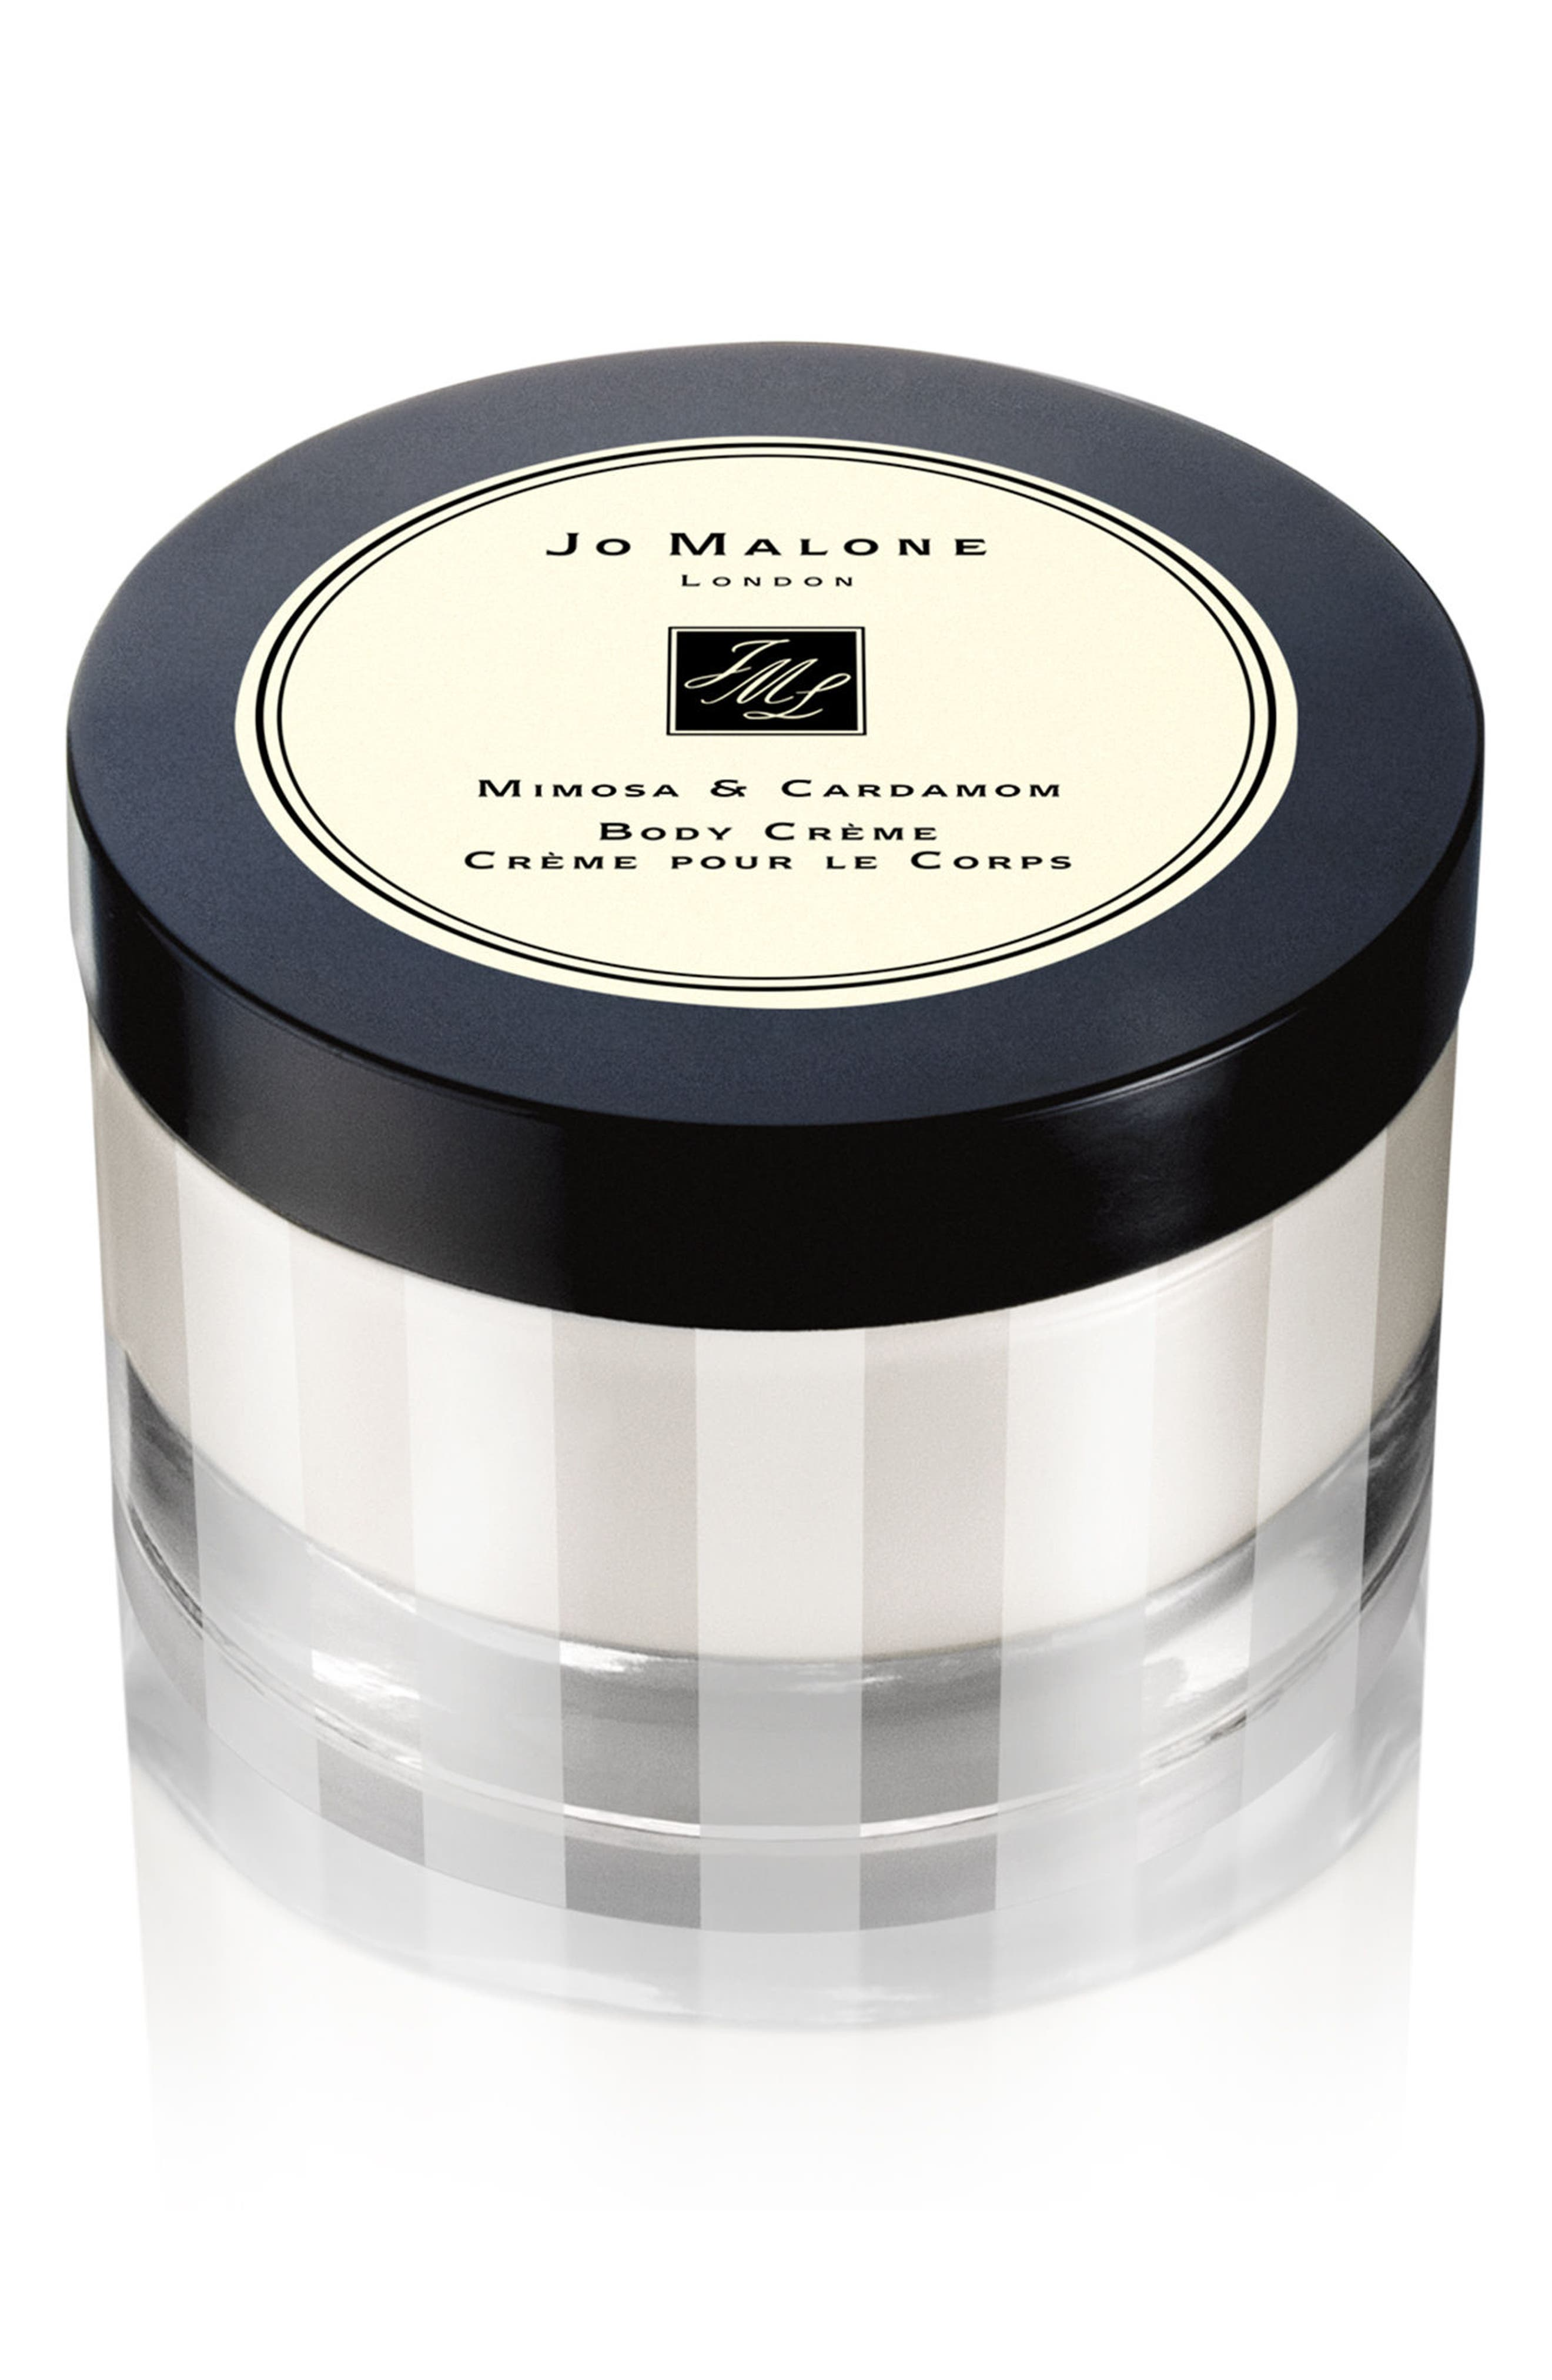 Alternate Image 1 Selected - Jo Malone London™ Mimosa & Cardamom Body Crème